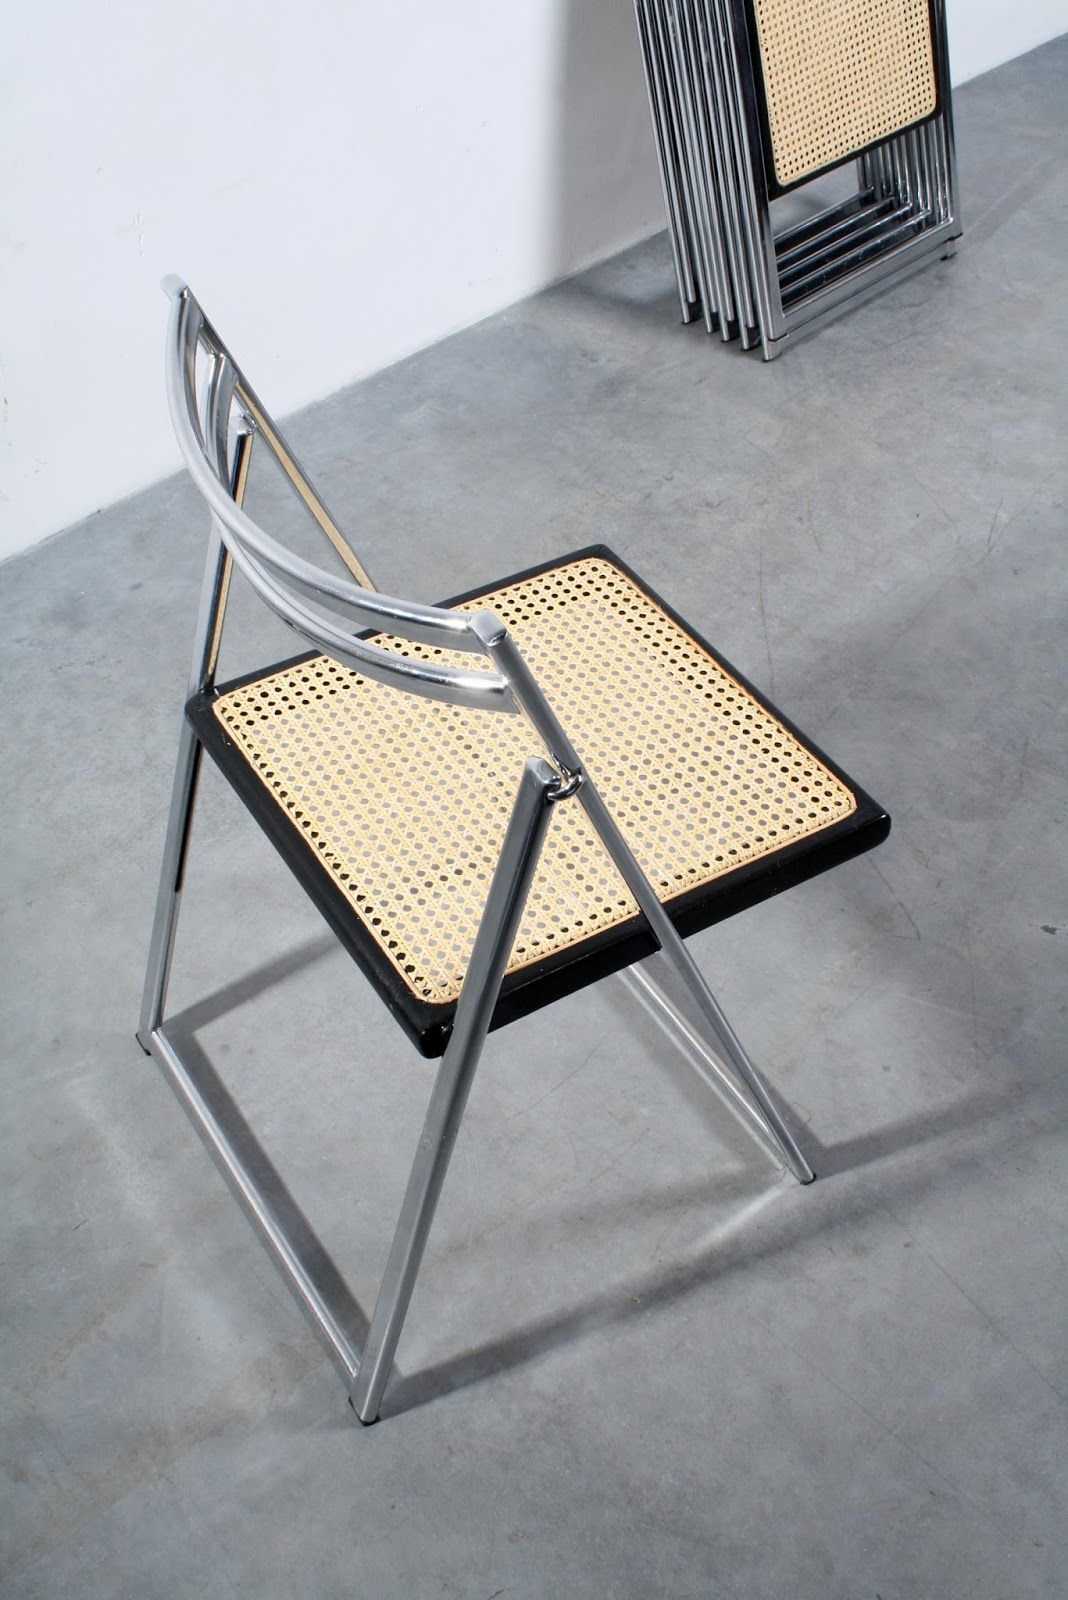 Design Meubels Groningen.Set Of Six Italian Design Folding Chairs With New Webbing Sold At